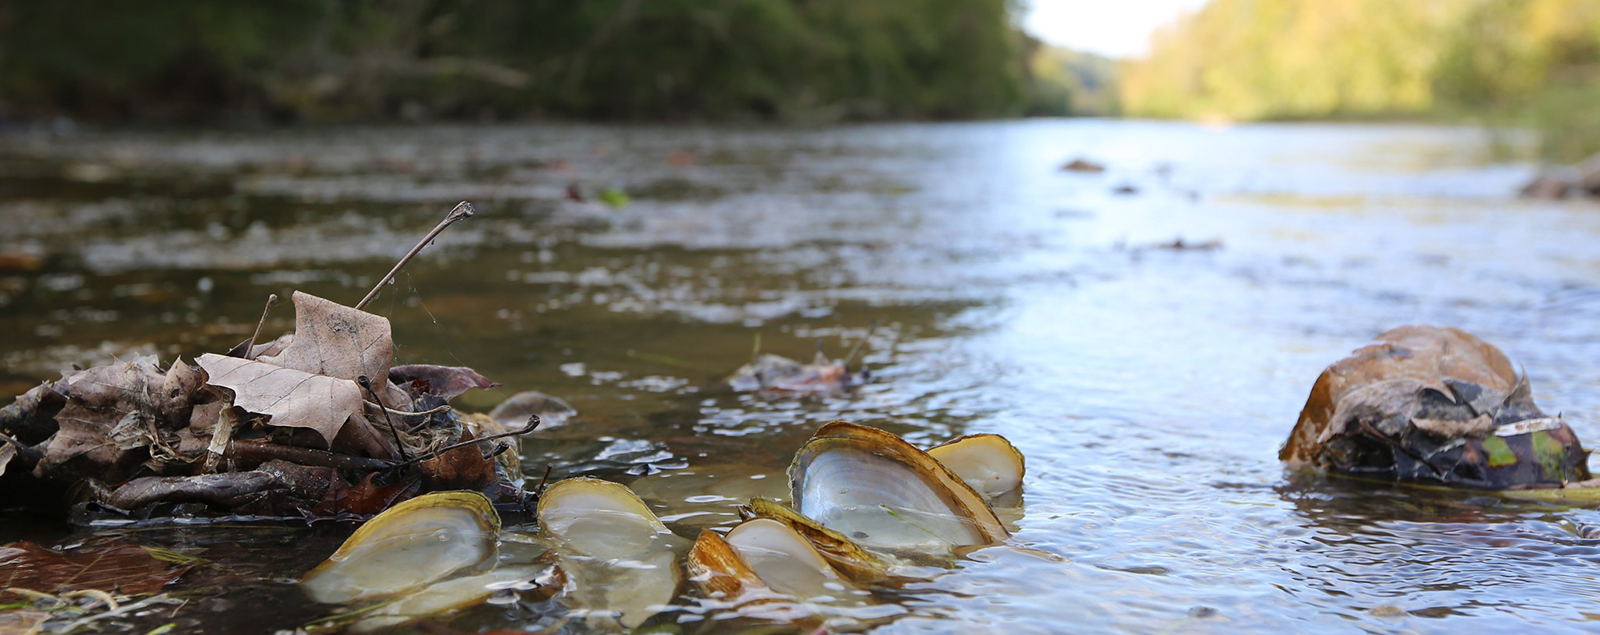 streamed with open mussel shells in water